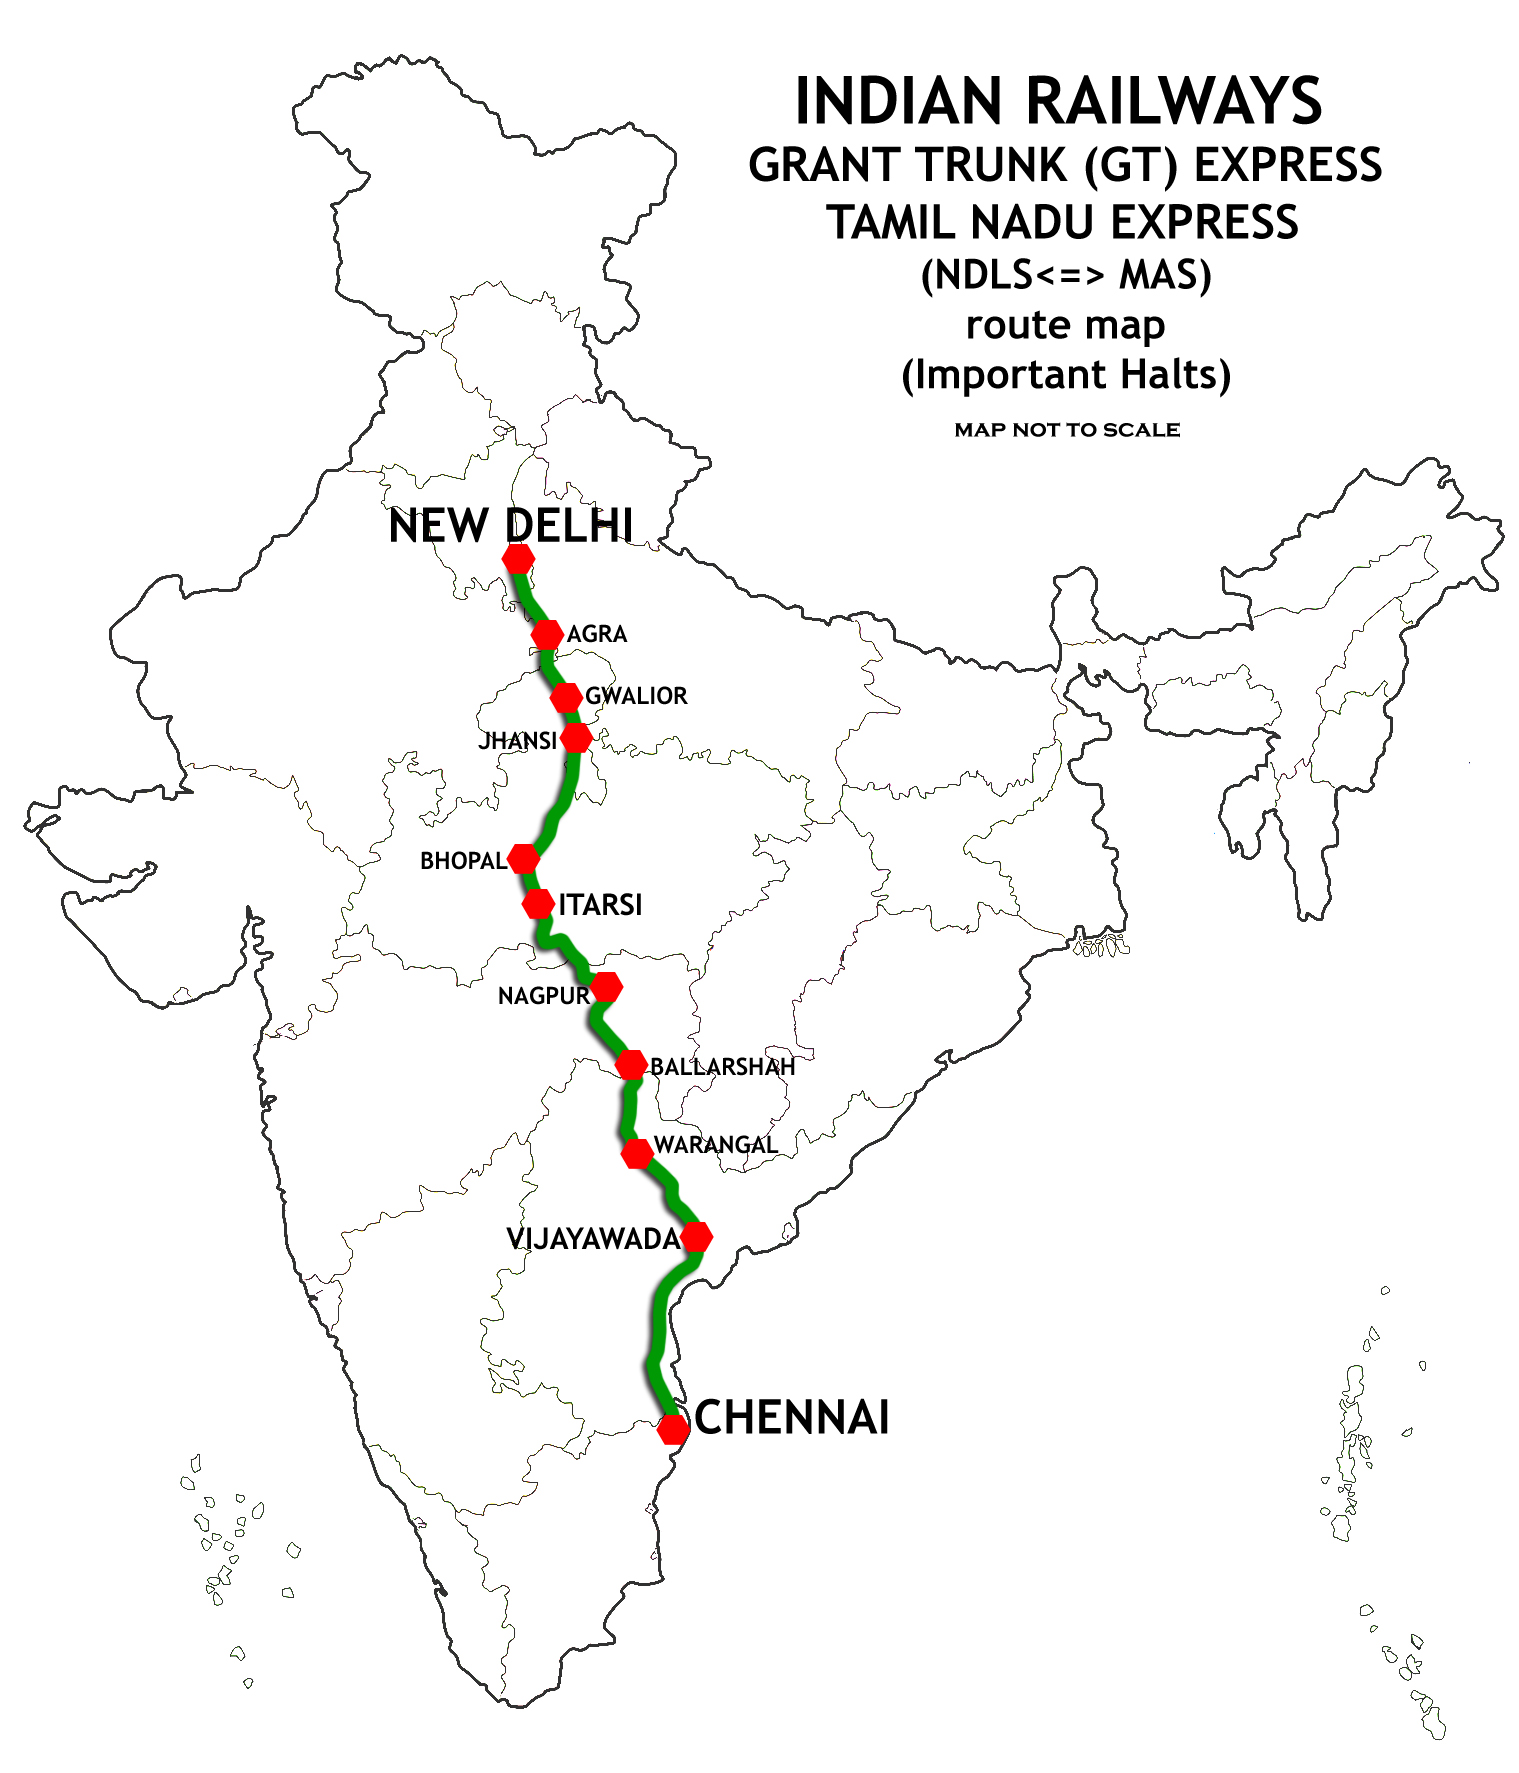 New Delhi–Chennai main line - Wikipedia on indian railway food, indian railways logo, indian railway network, indian railway enquiry, auto train route map, indian rail route, us train routes map, indian railway fare table, indian railway ticket availability, pakistan railway track map, indian railways seat availability, transcontinental railroad route map, indian railway schedule, european train route map, indian railway reservation, india railway map, indian railway timetable, indian railway stations, mt. shasta route map, ferdinand magellan's route map,